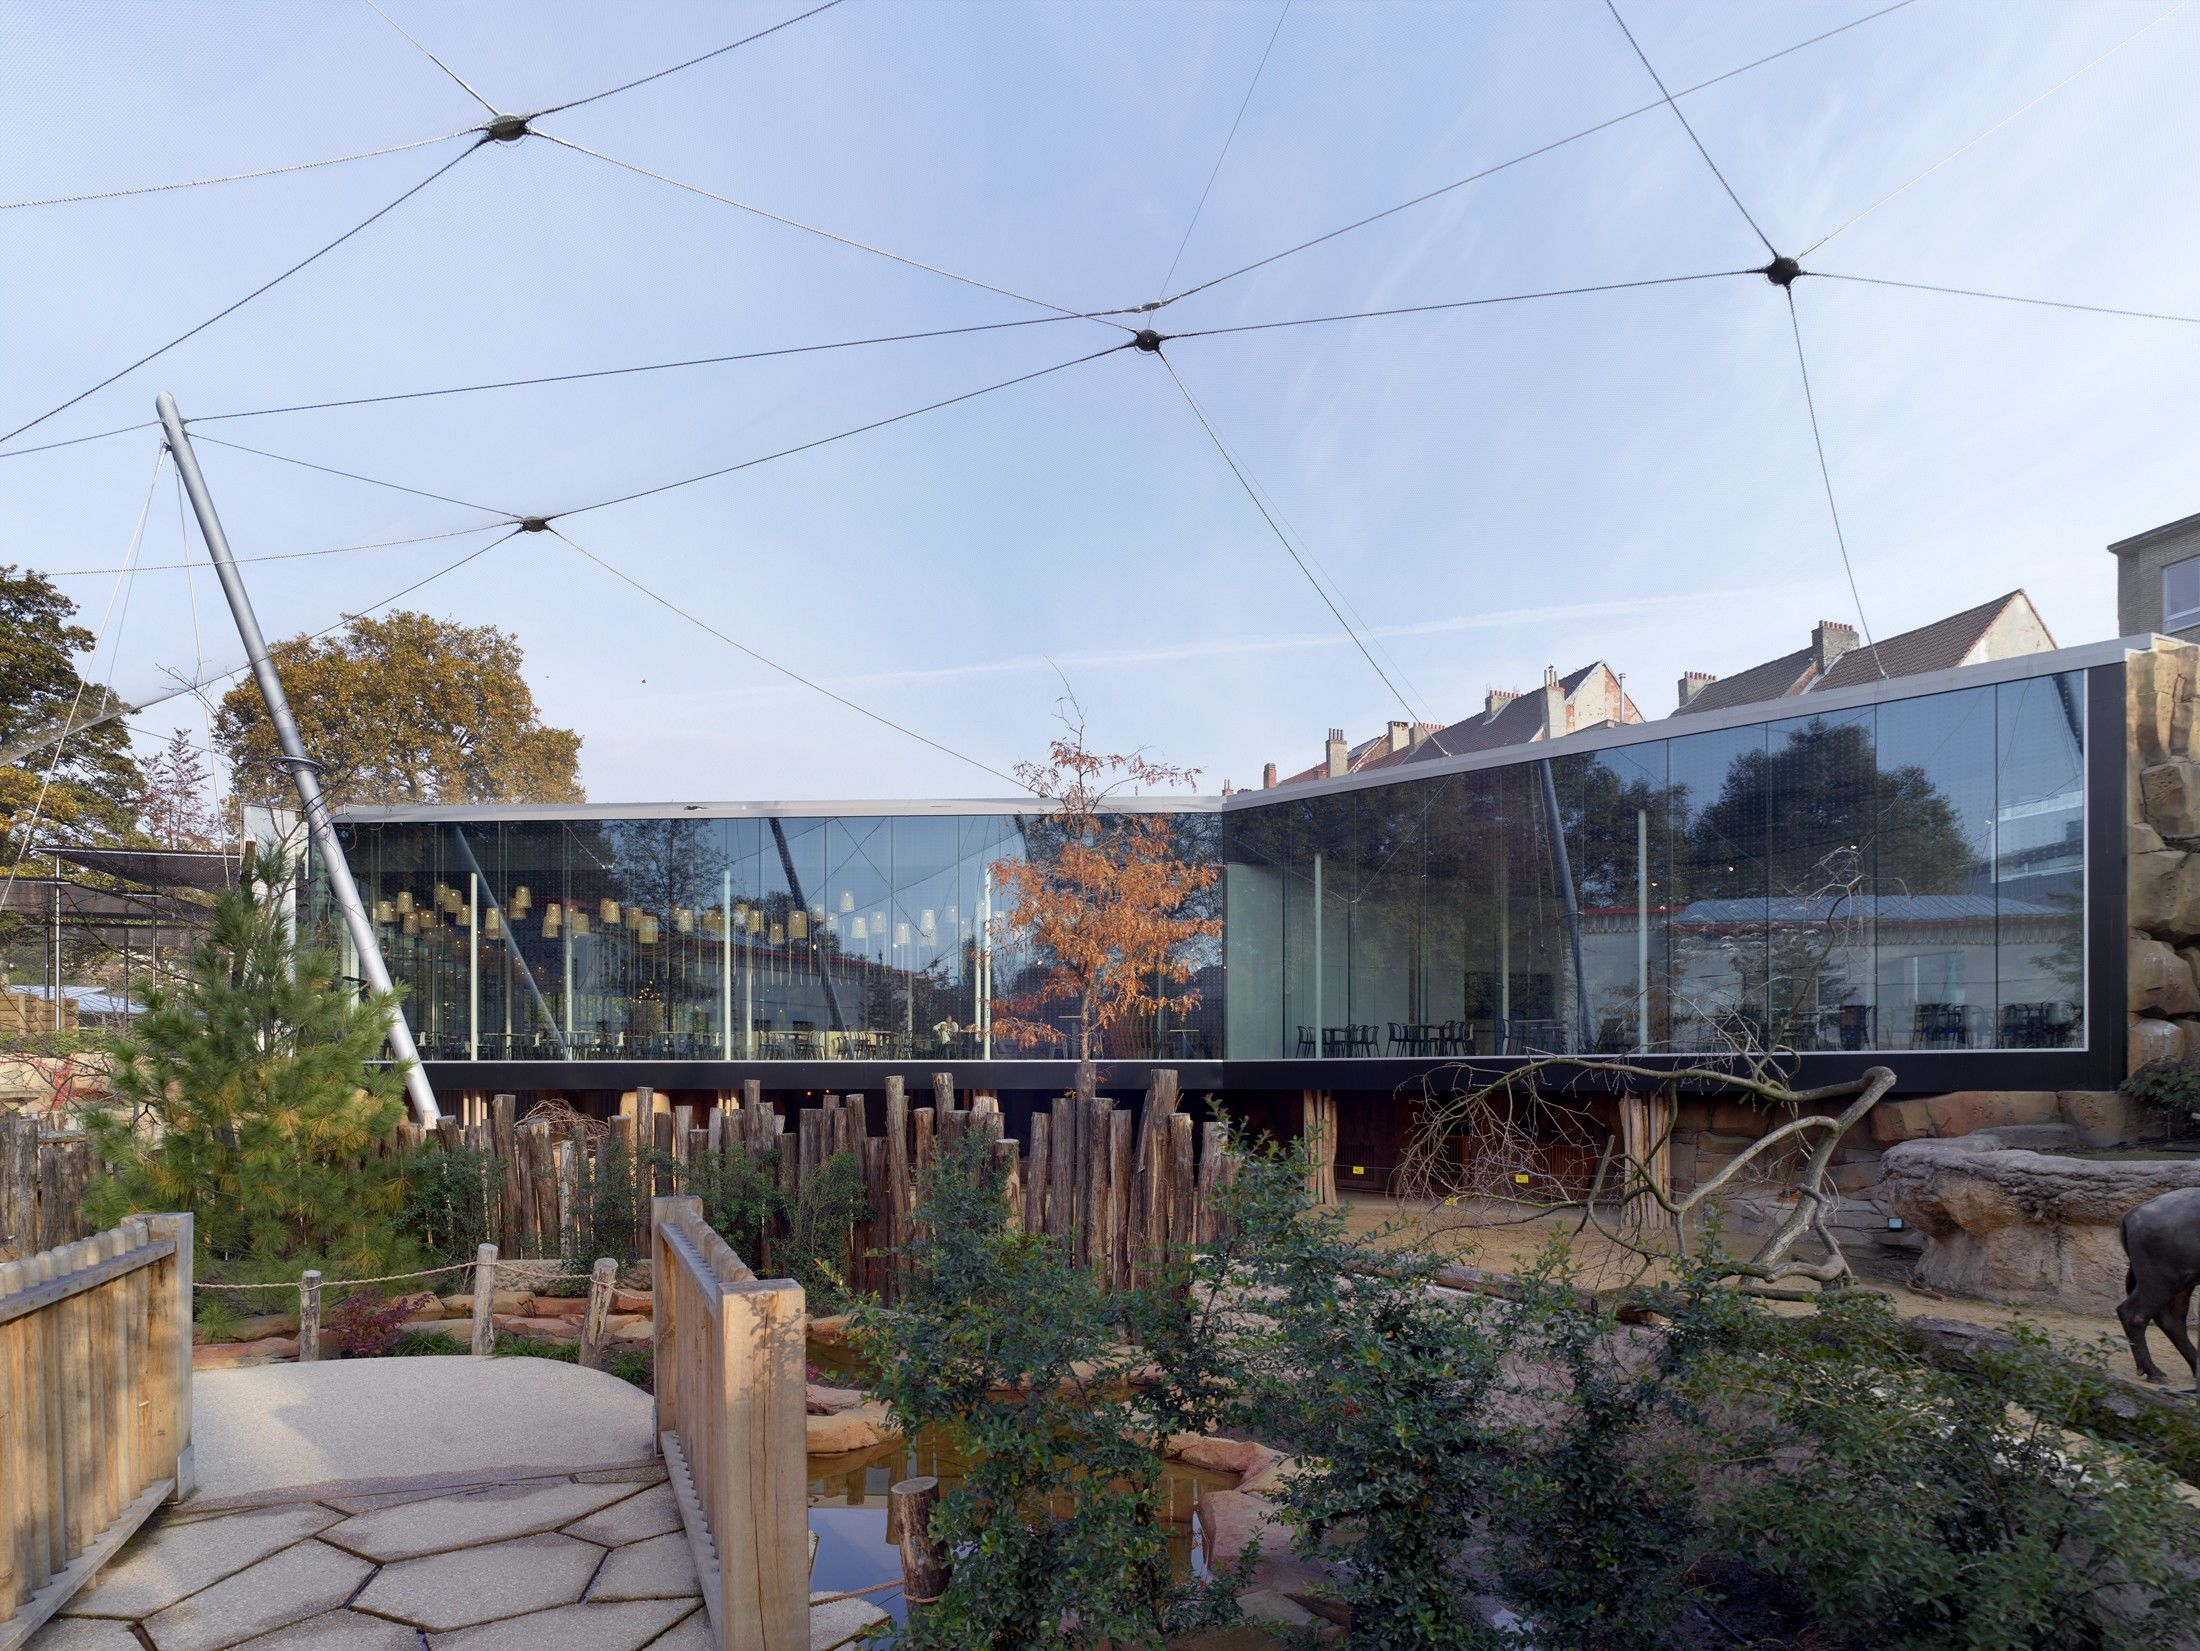 Restaurant And Aviary At The Antwerp Zoo Studio Farris Architects Archello